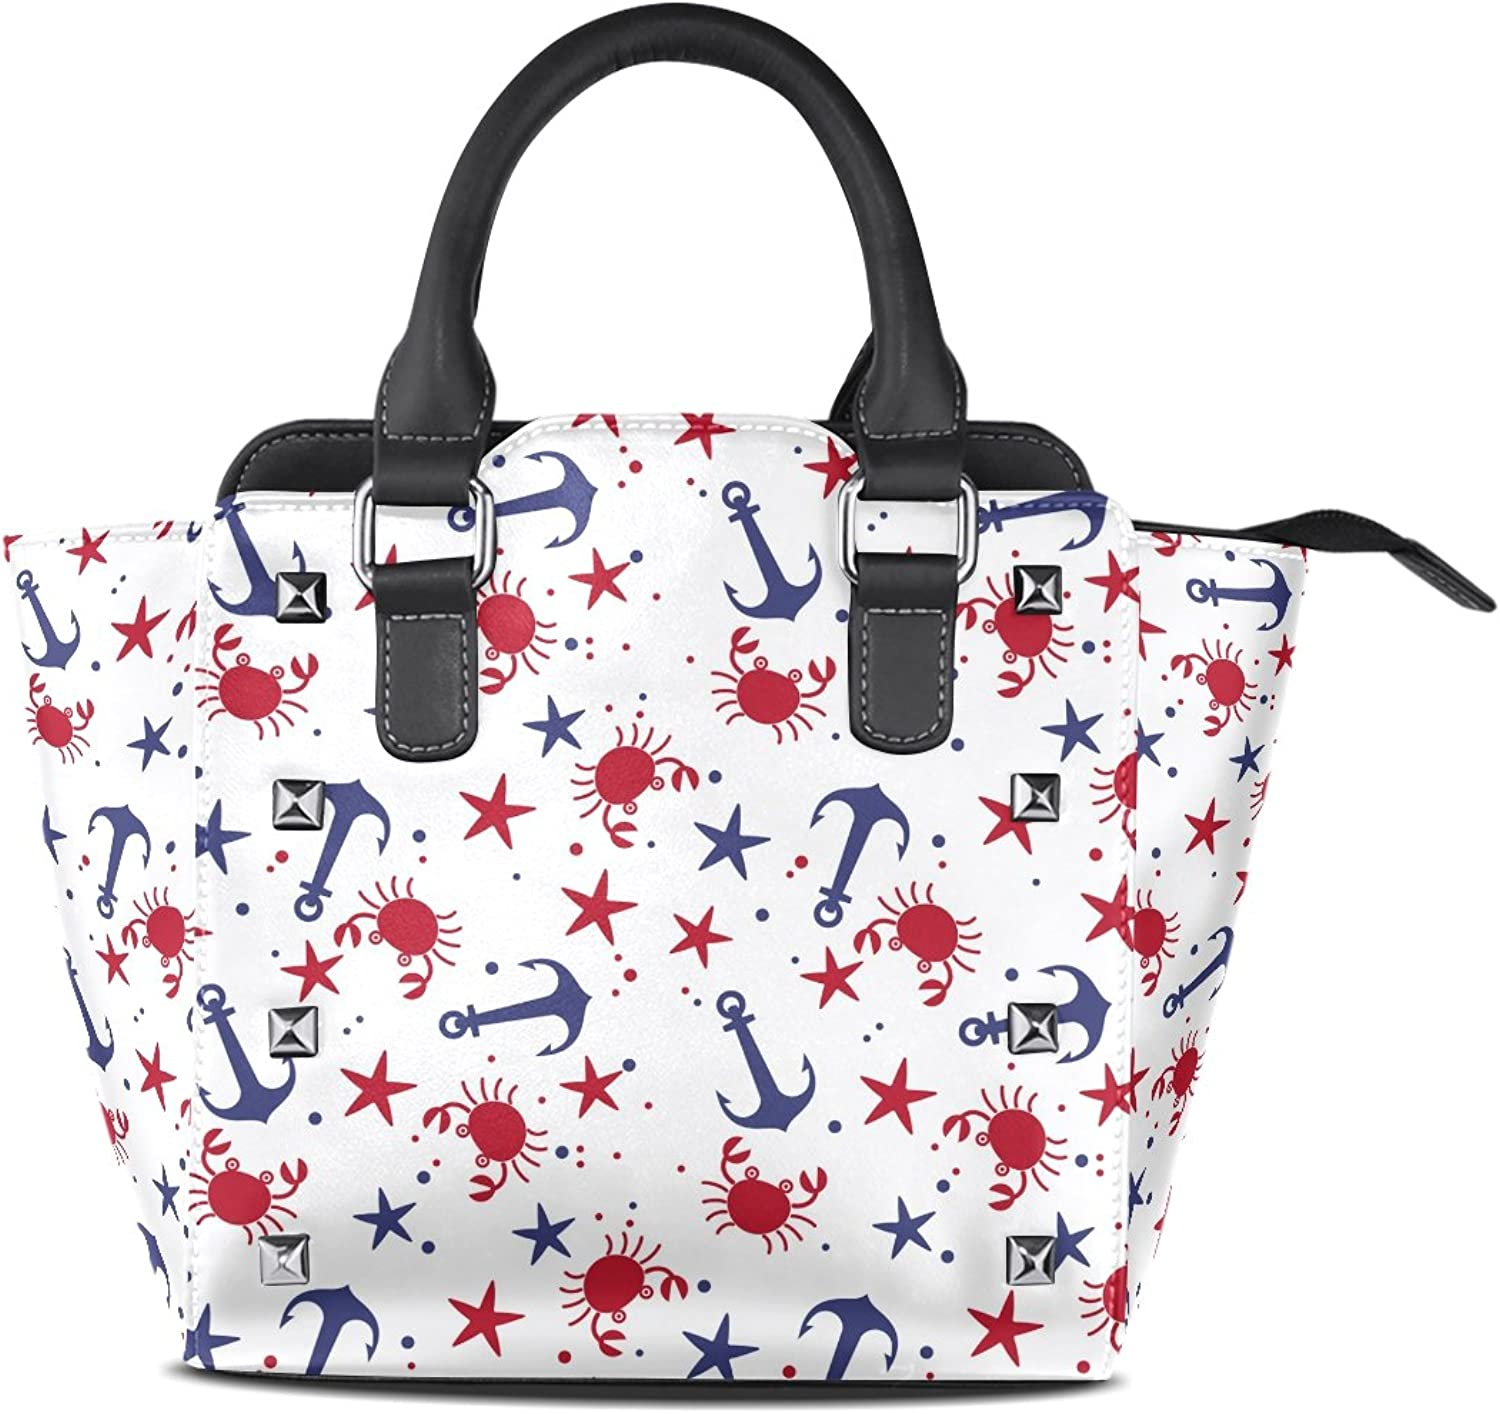 Sunlome Sea Crabs Starfishes Anchors Print Women's Leather Tote Shoulder Bags Handbags